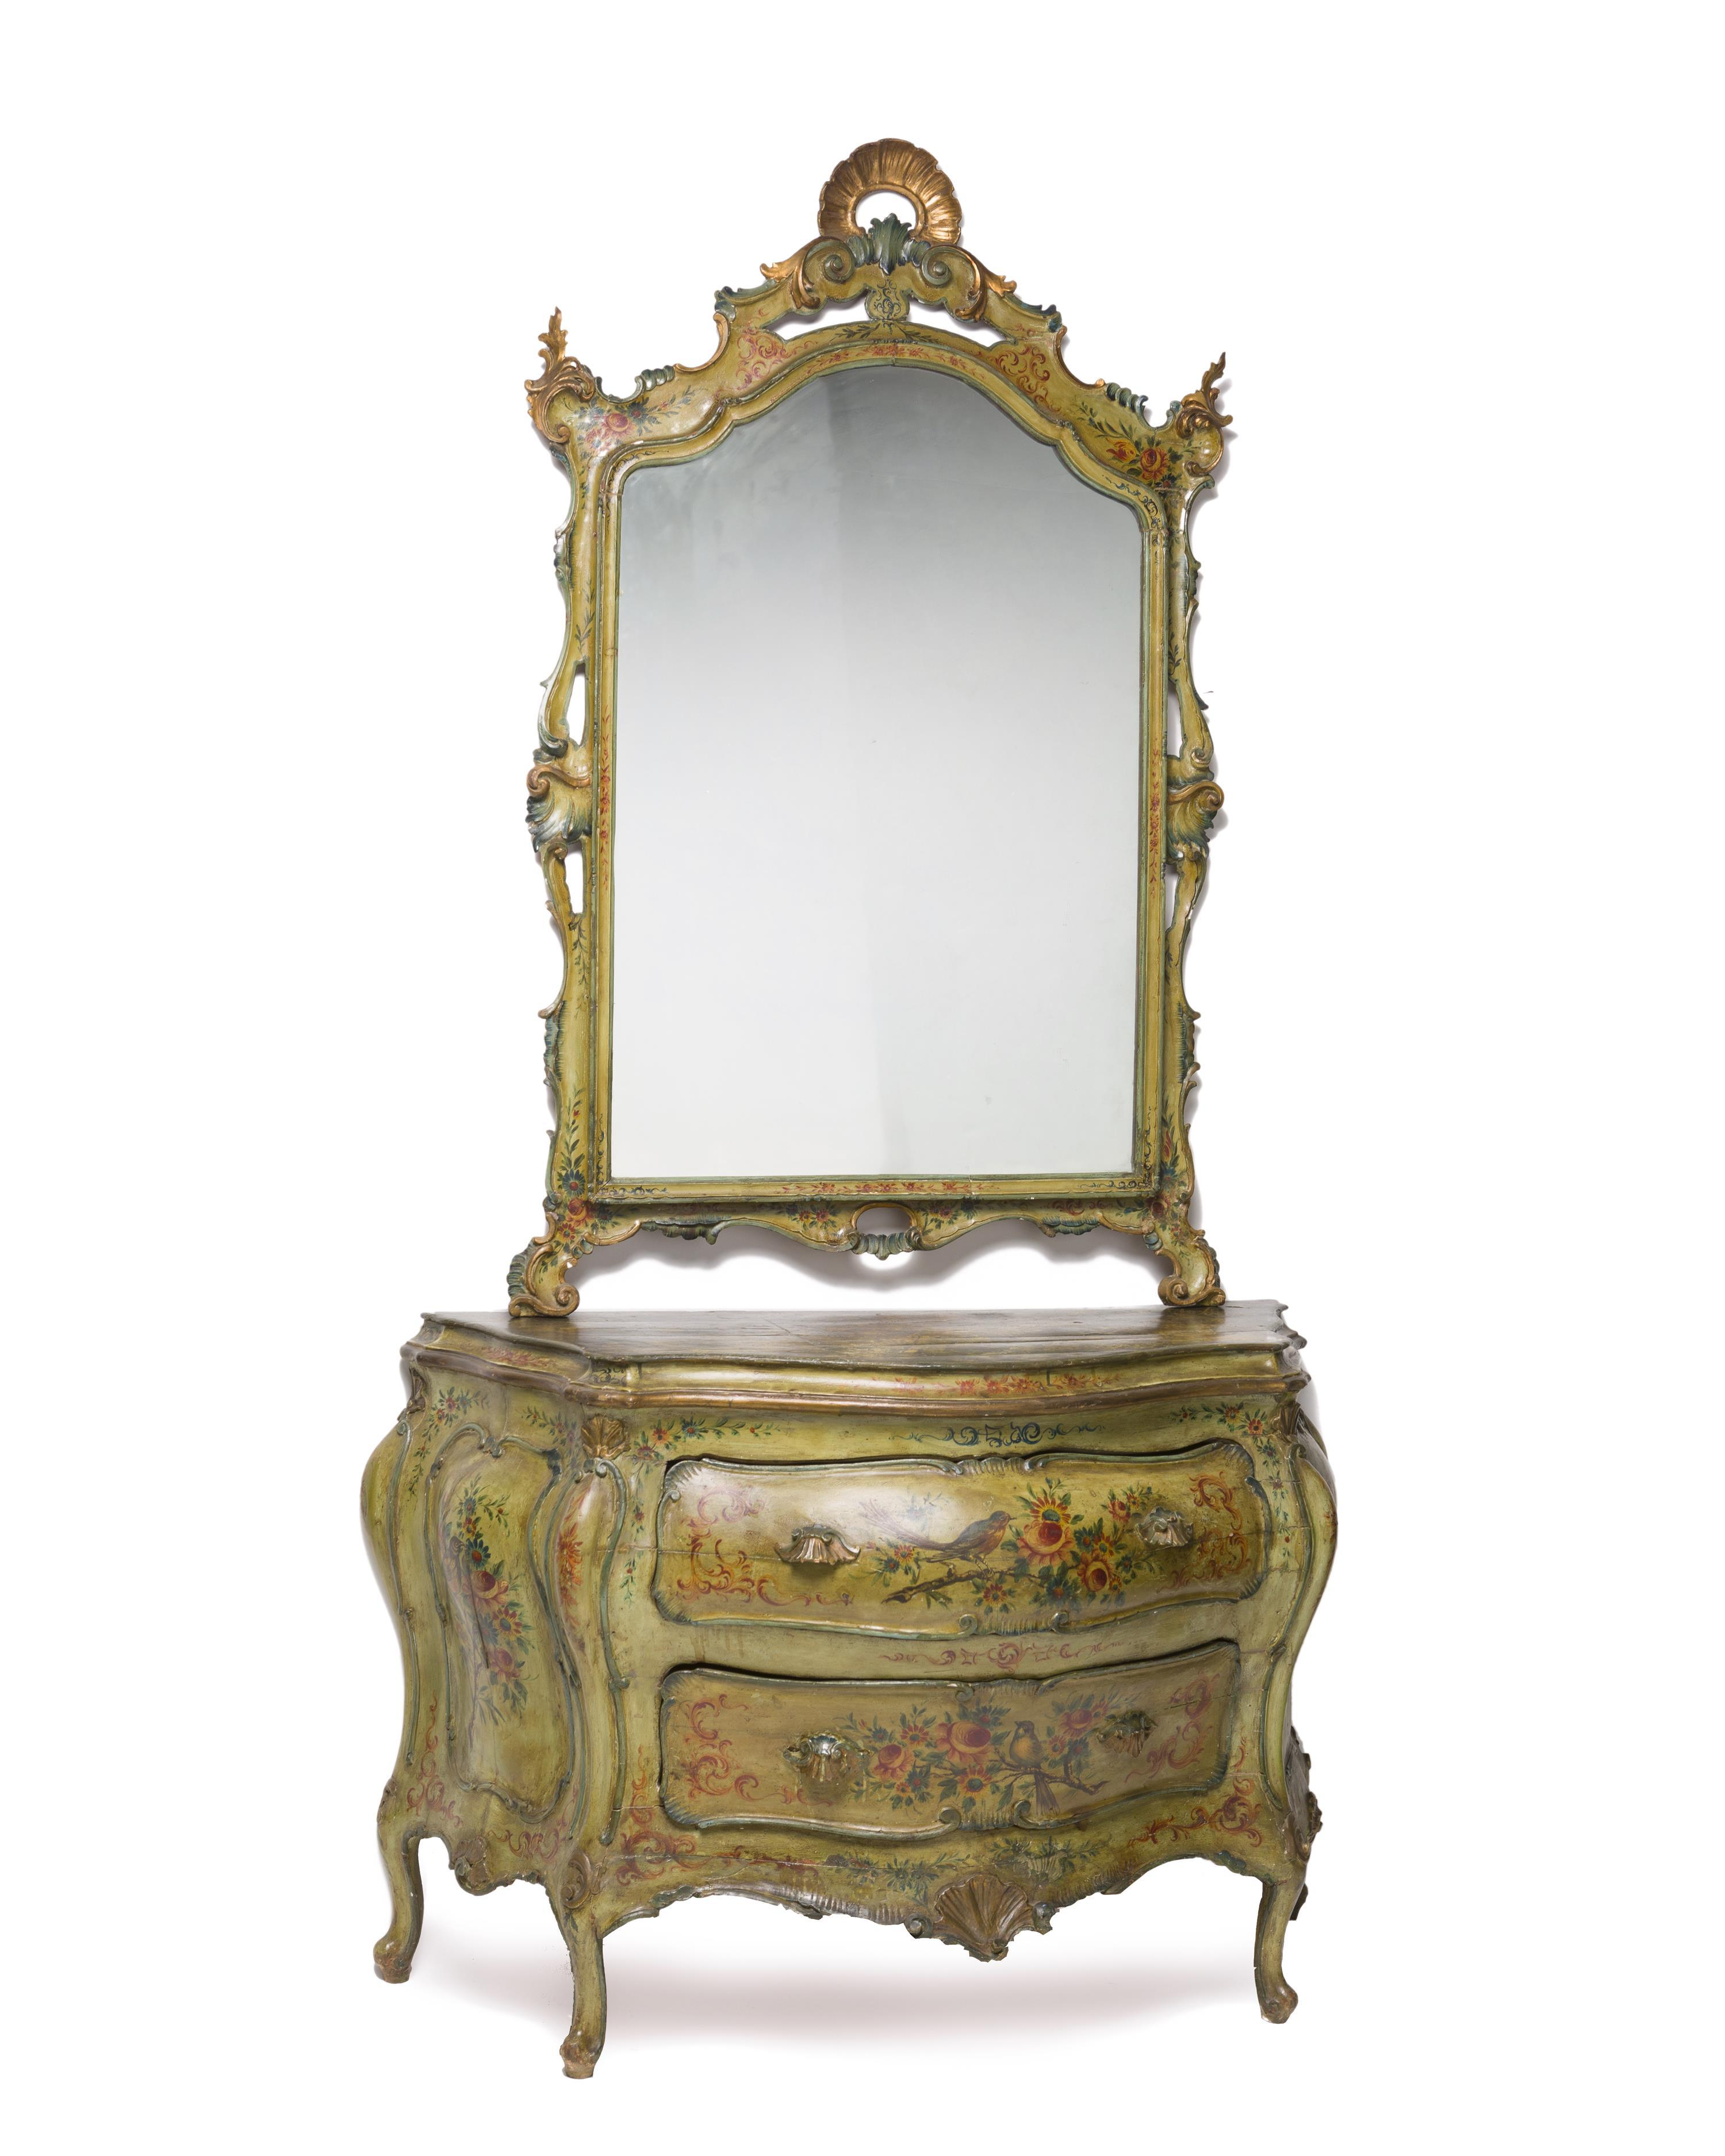 An Italian Rococo-style painted chest with mirror